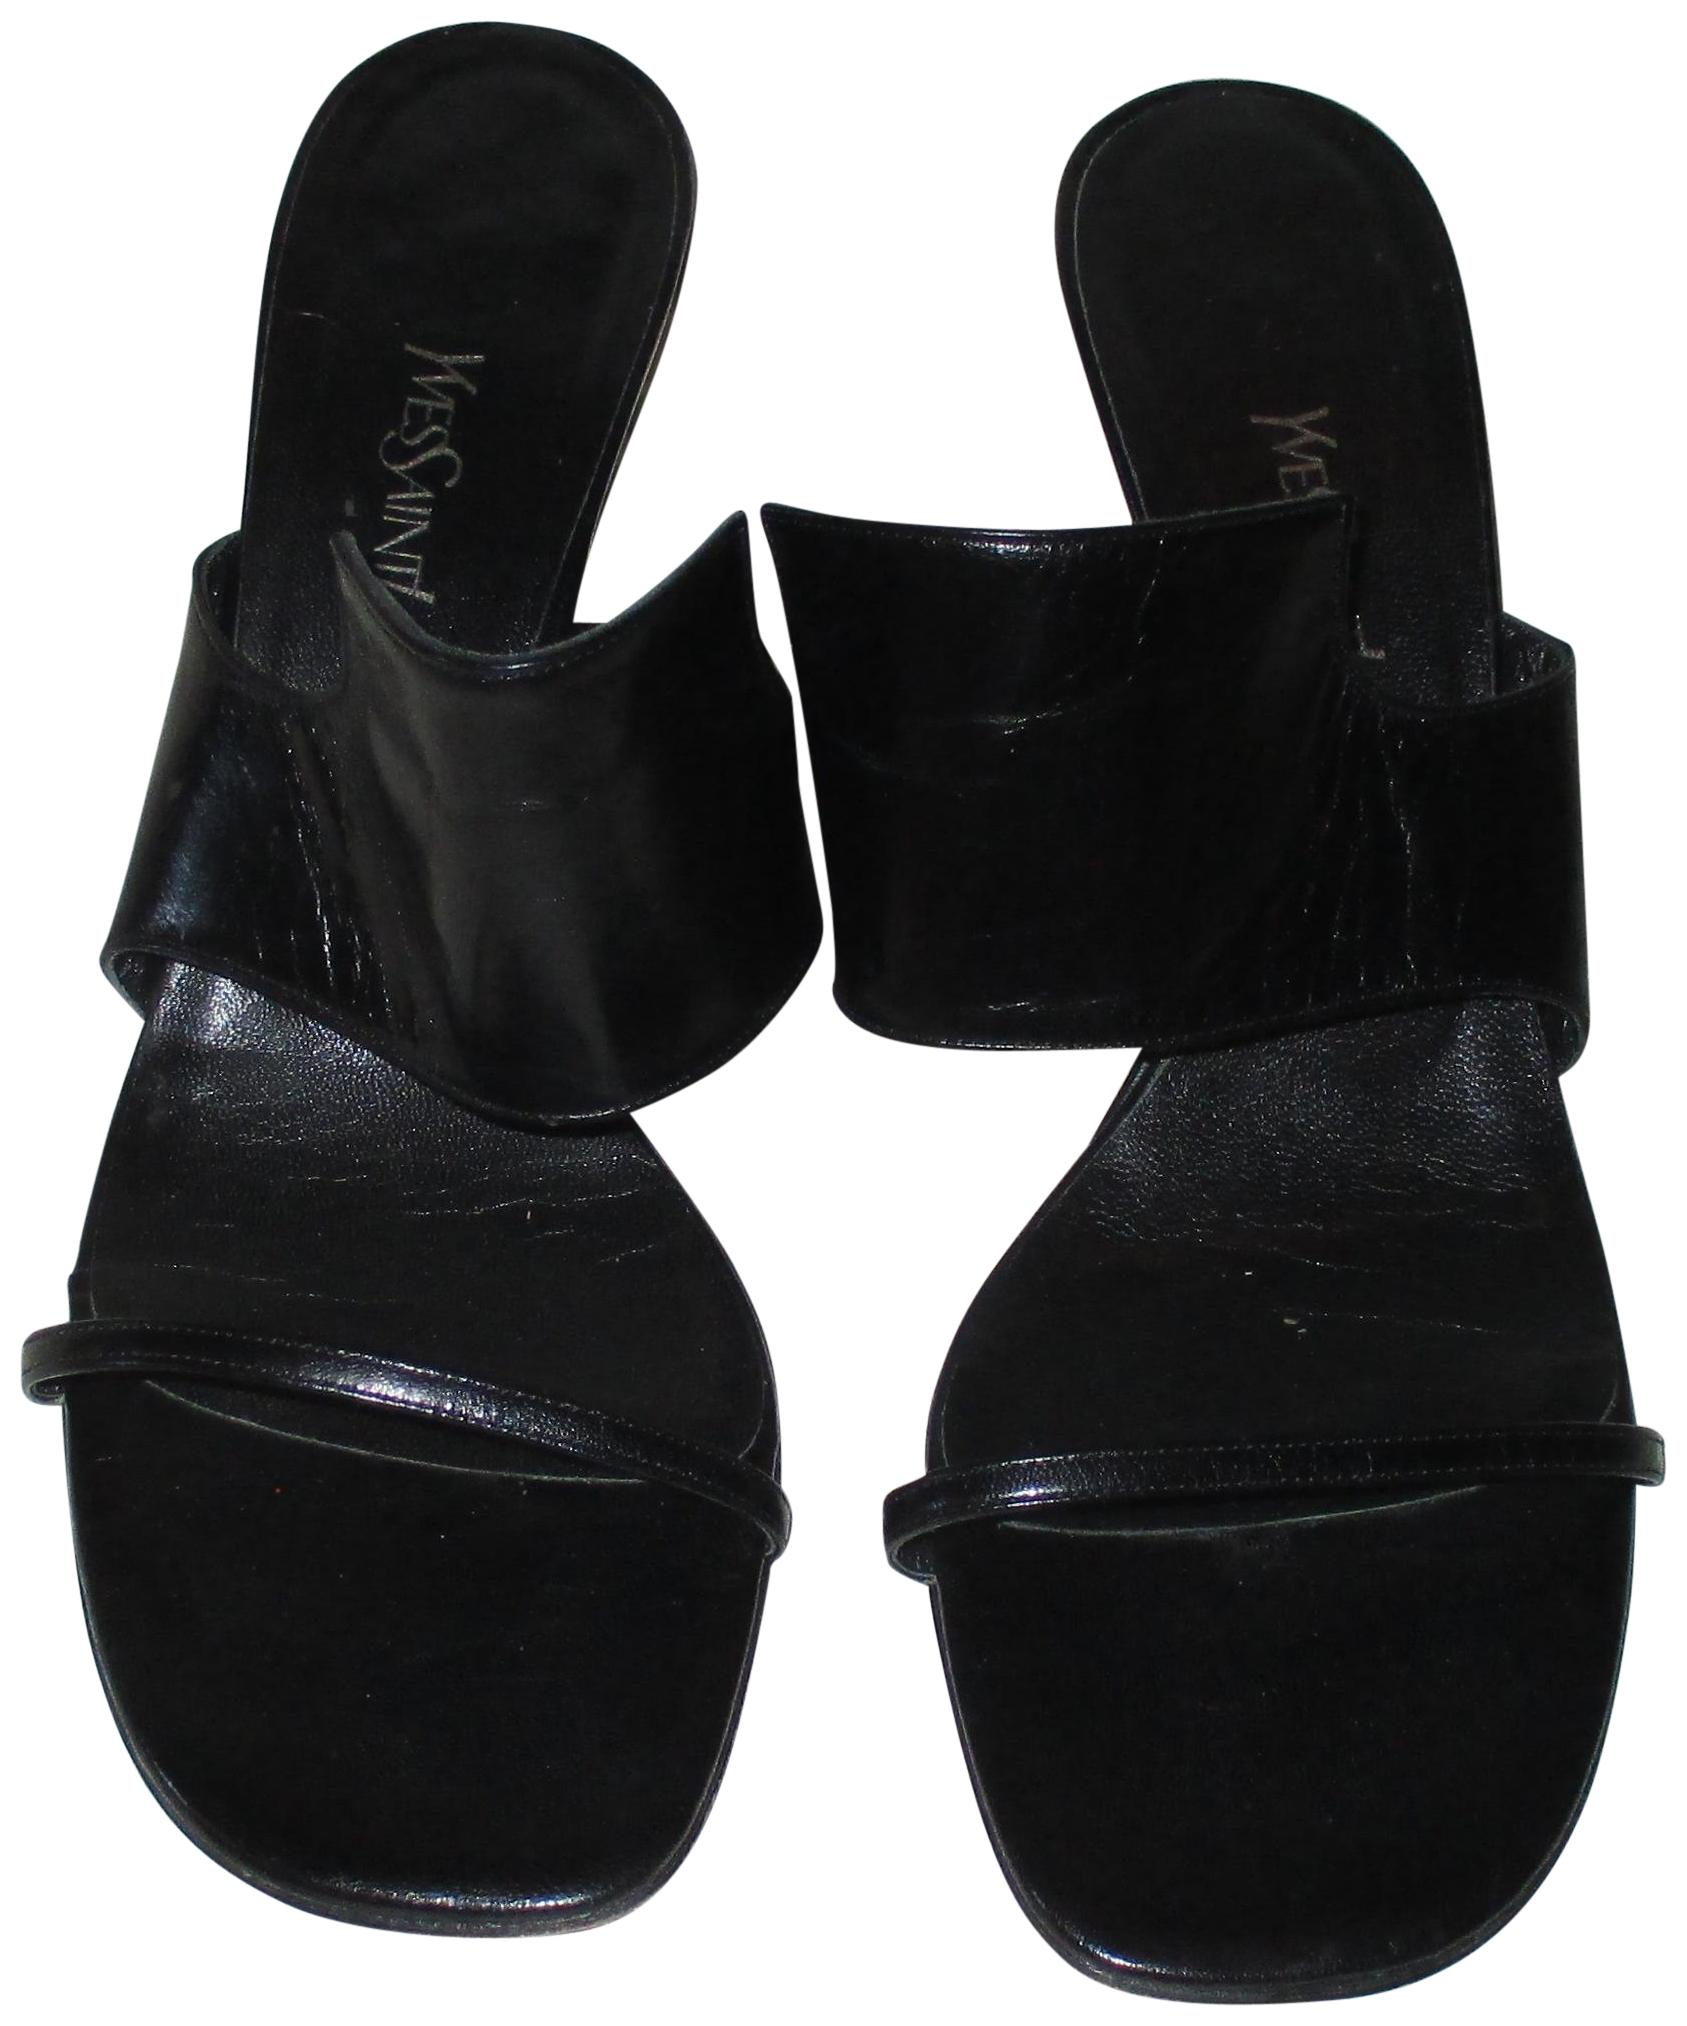 Saint Laurent Black Yves Ysl Leather Open Toe High High High Heels Sandals Size US 9.5 Regular (M, B) 58997c